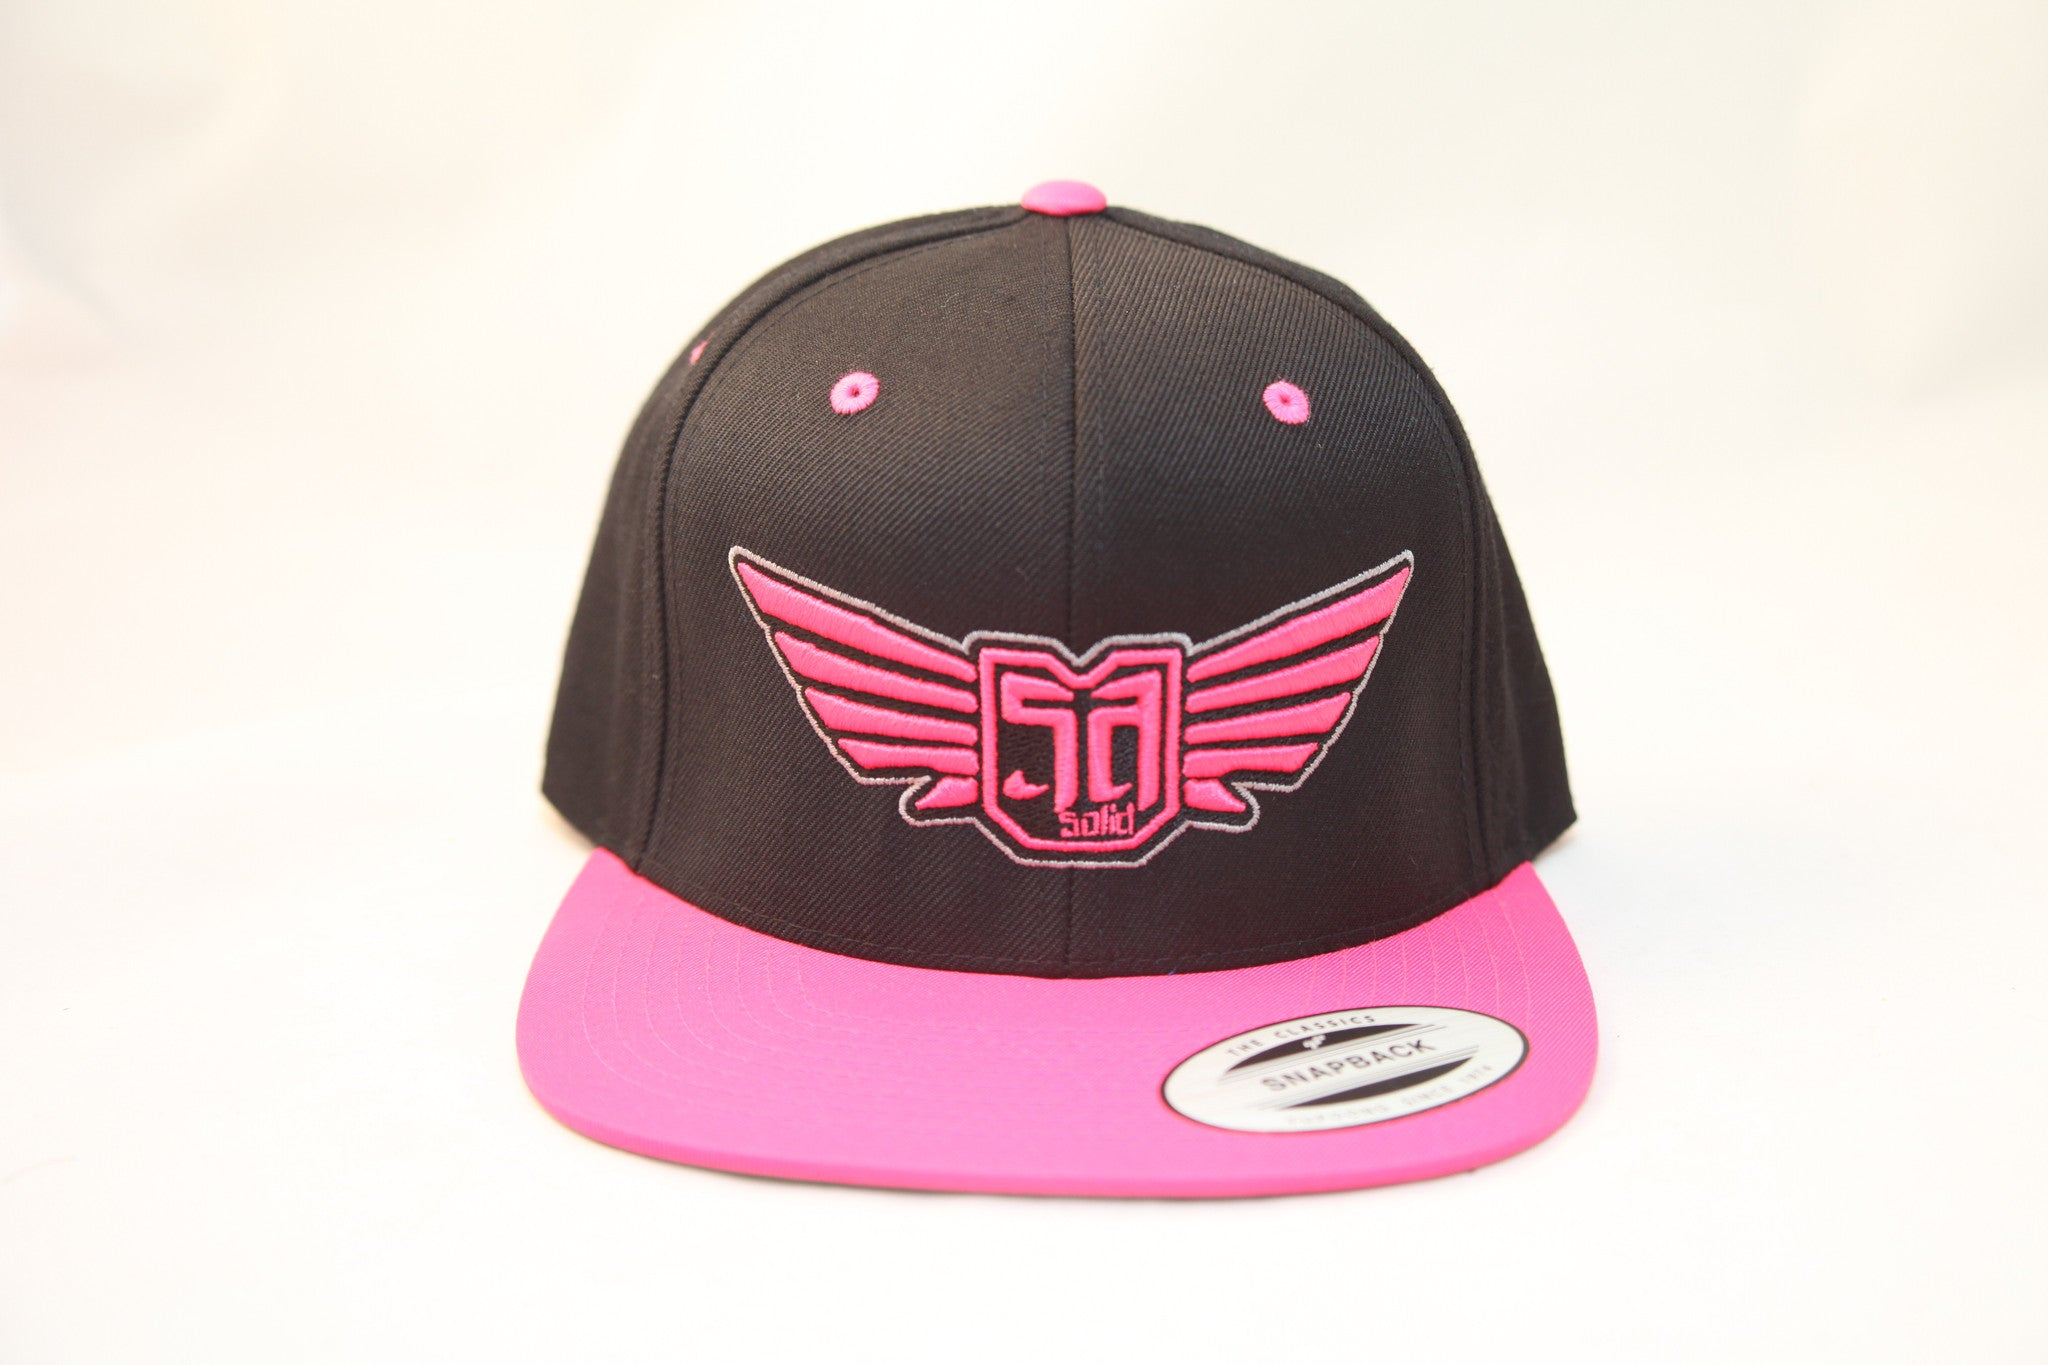 AV8 - FLEXFIT SNAP BACK HAT - BLACK / PINK - PNK BLK SLV LOGO